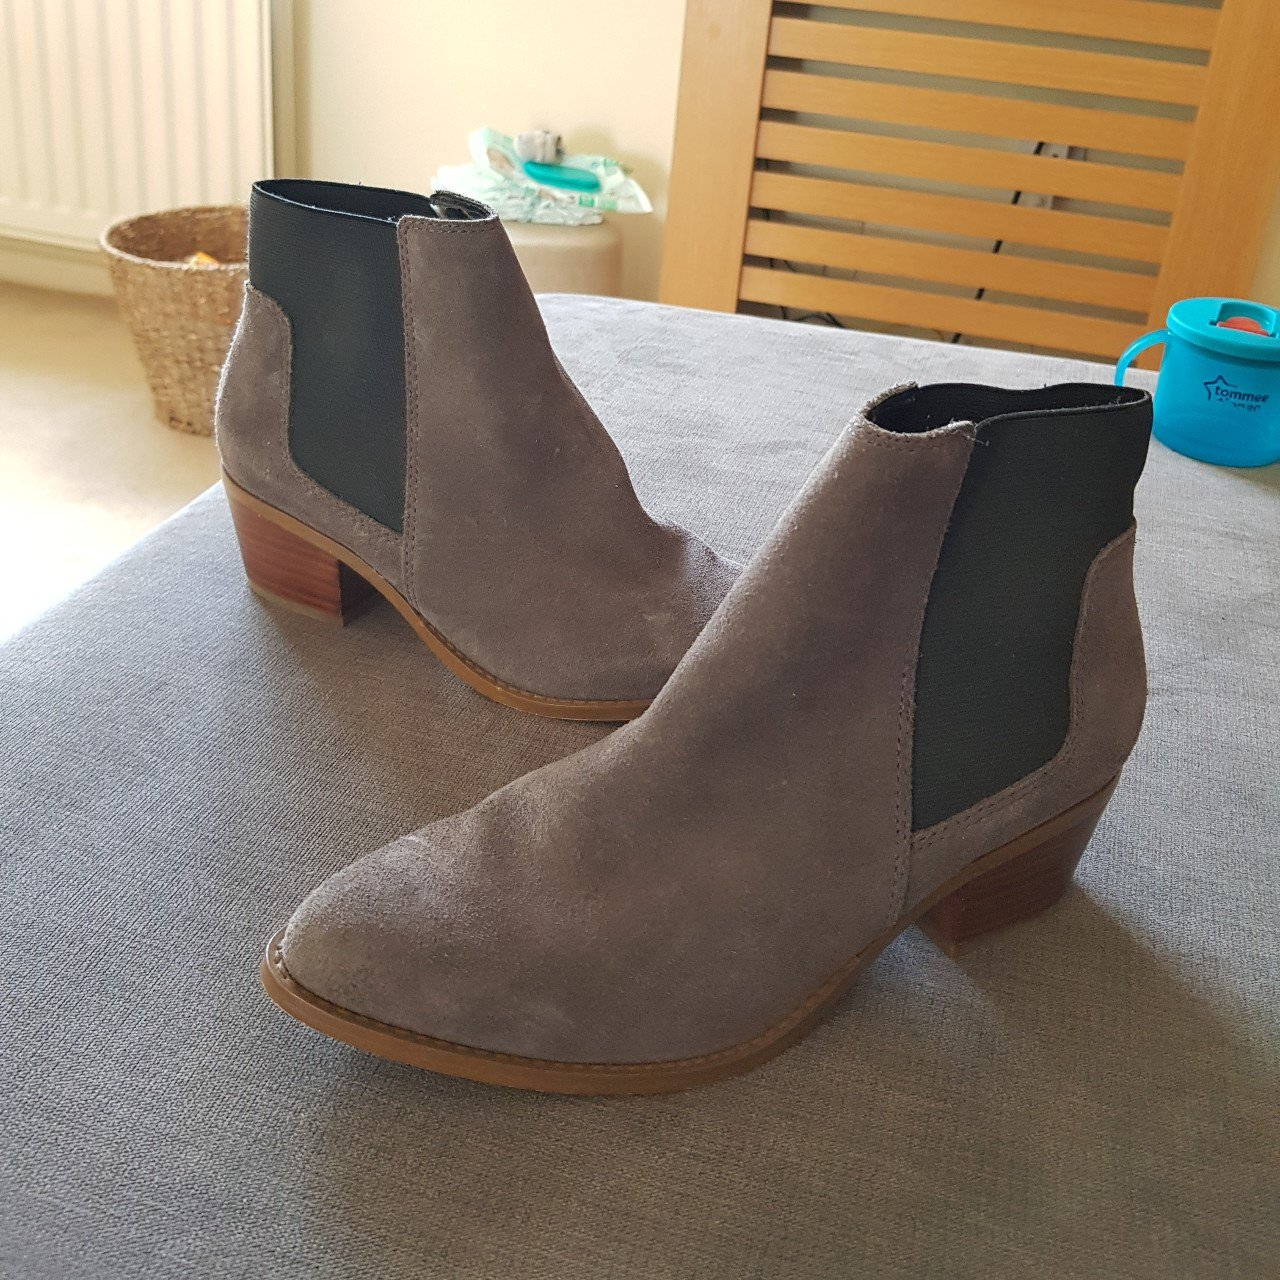 89e0236cb3a Miss KG boots. Worn on a UK holiday once so in great lovely - Depop